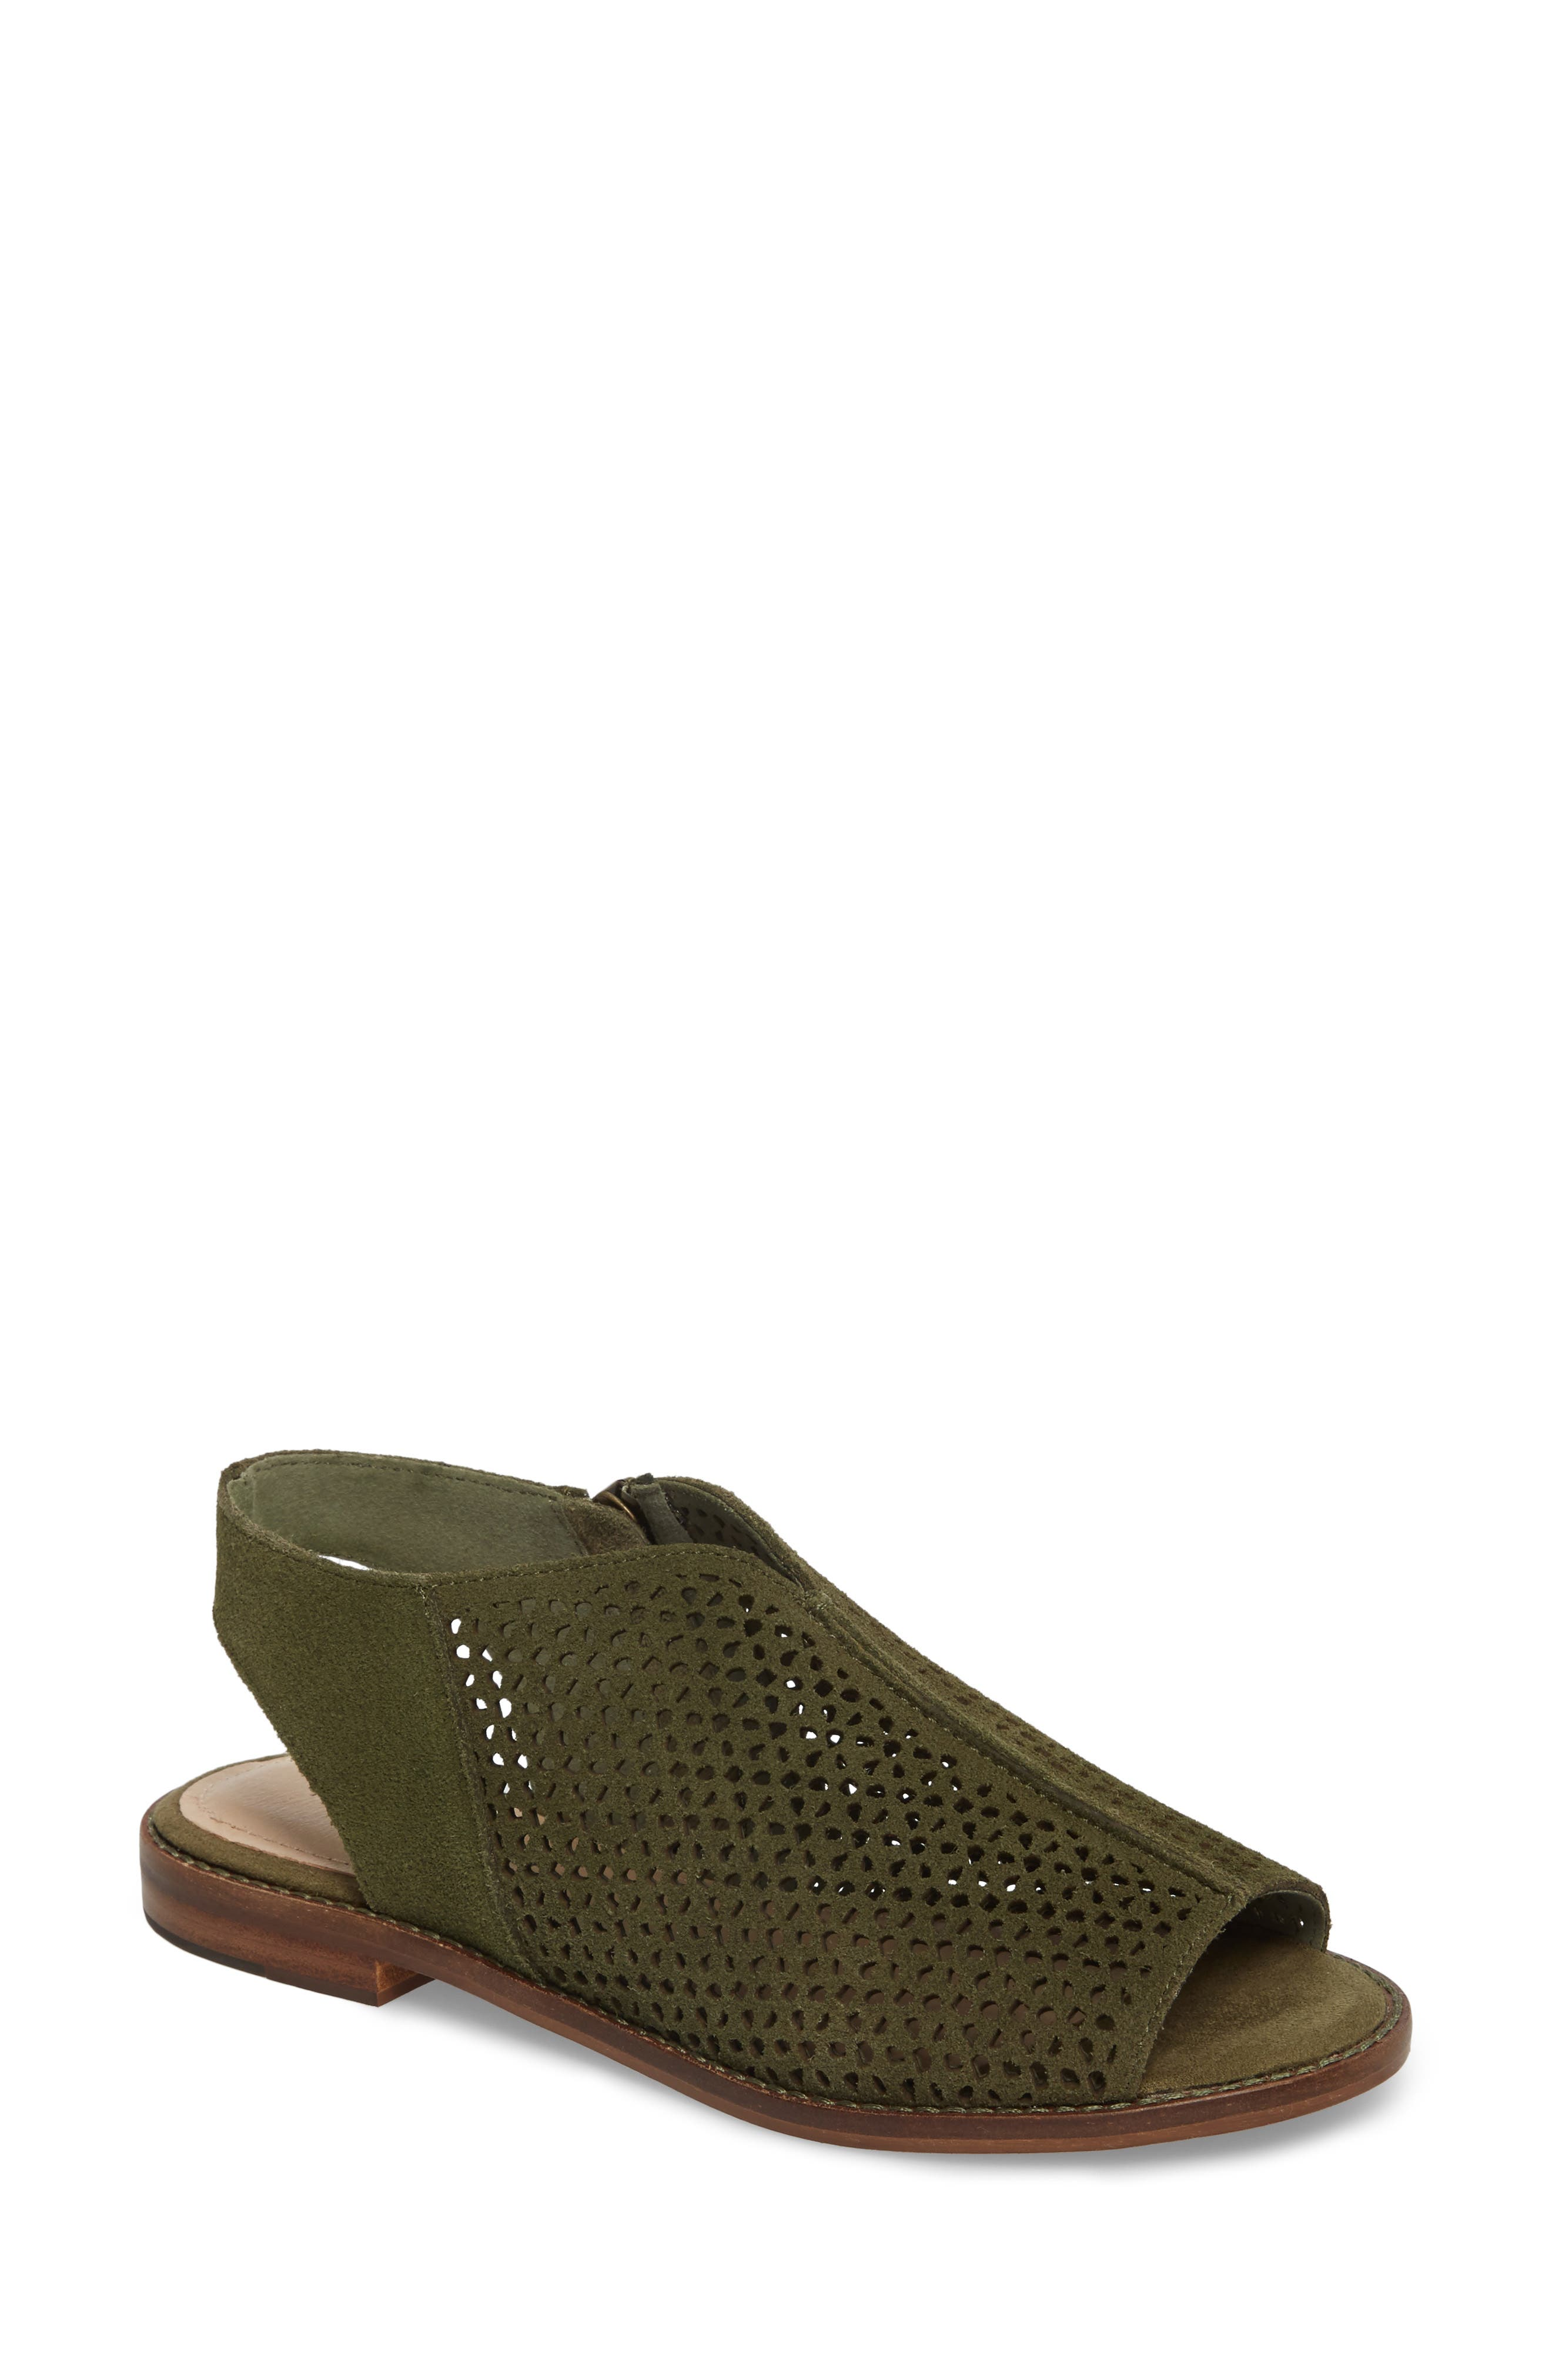 Seneca Perforated Sandal,                         Main,                         color, Olive